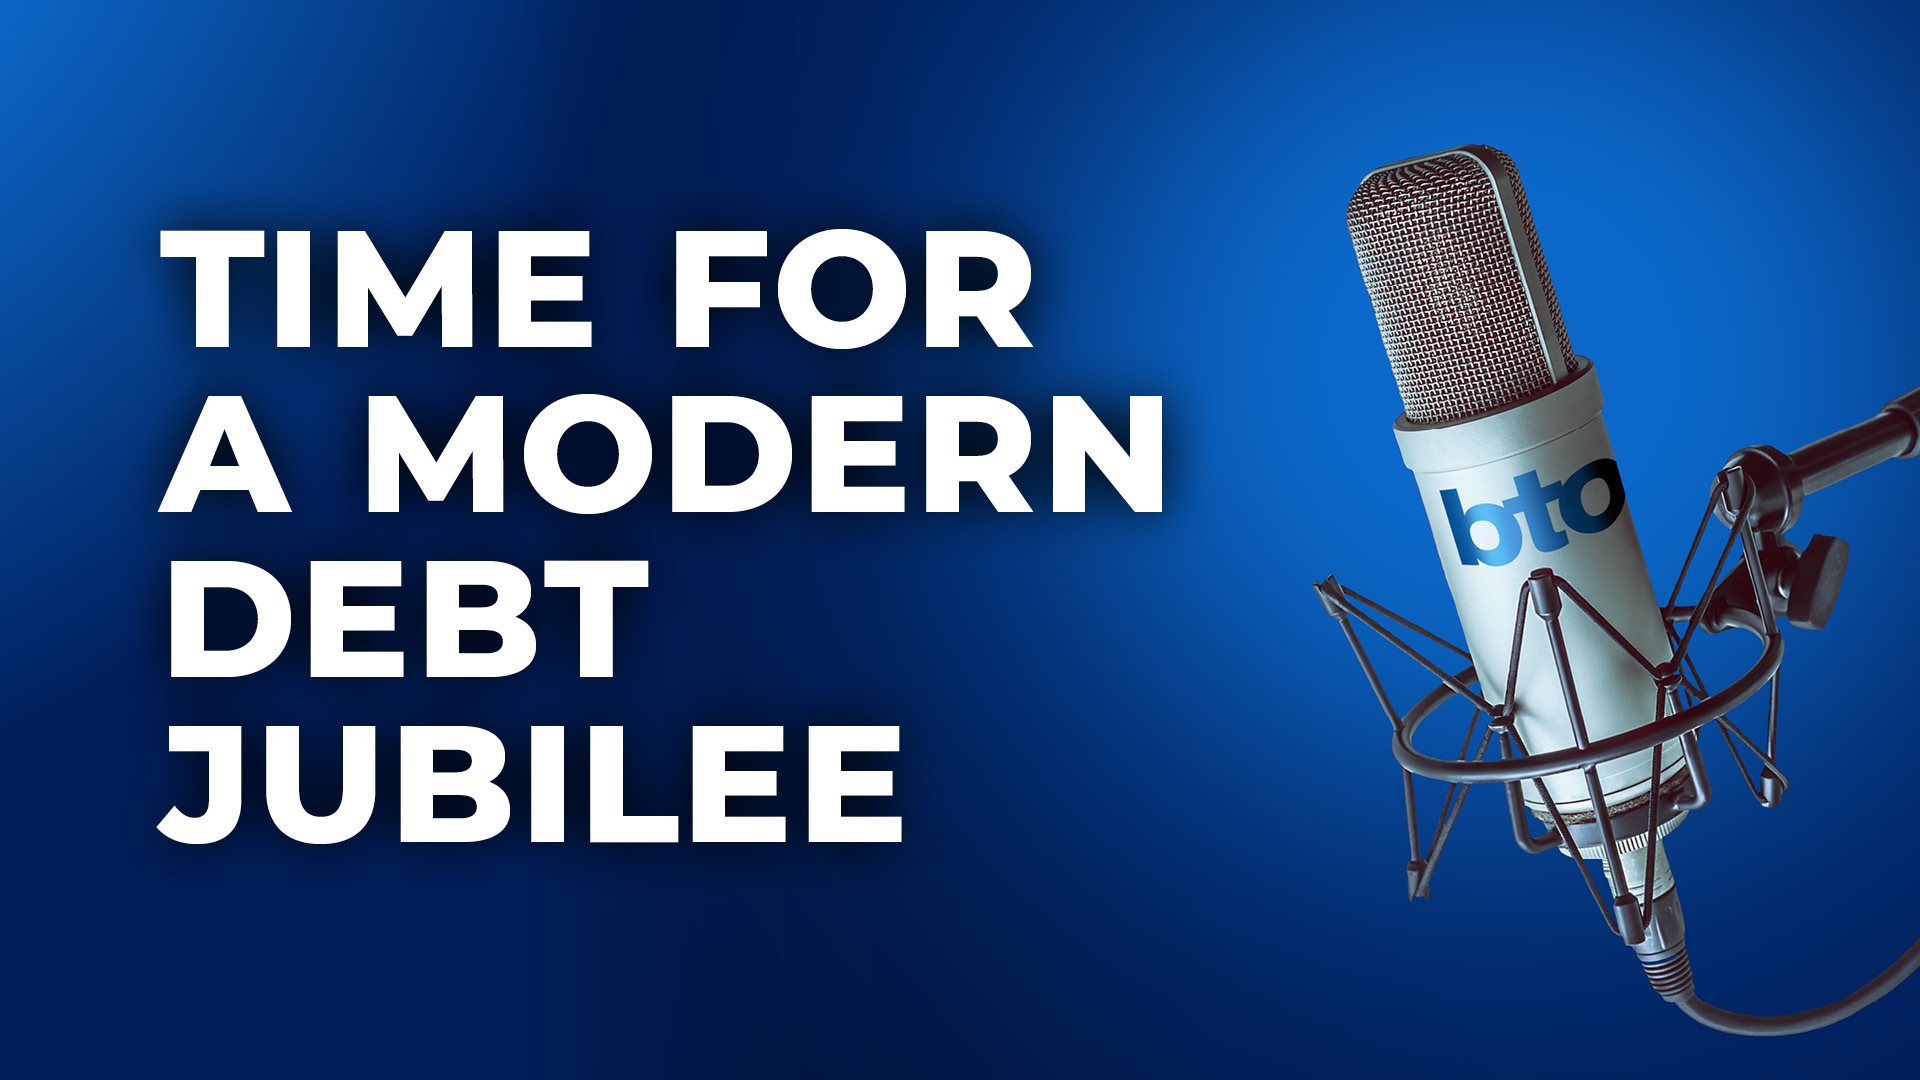 Time for a modern Debt Jubilee